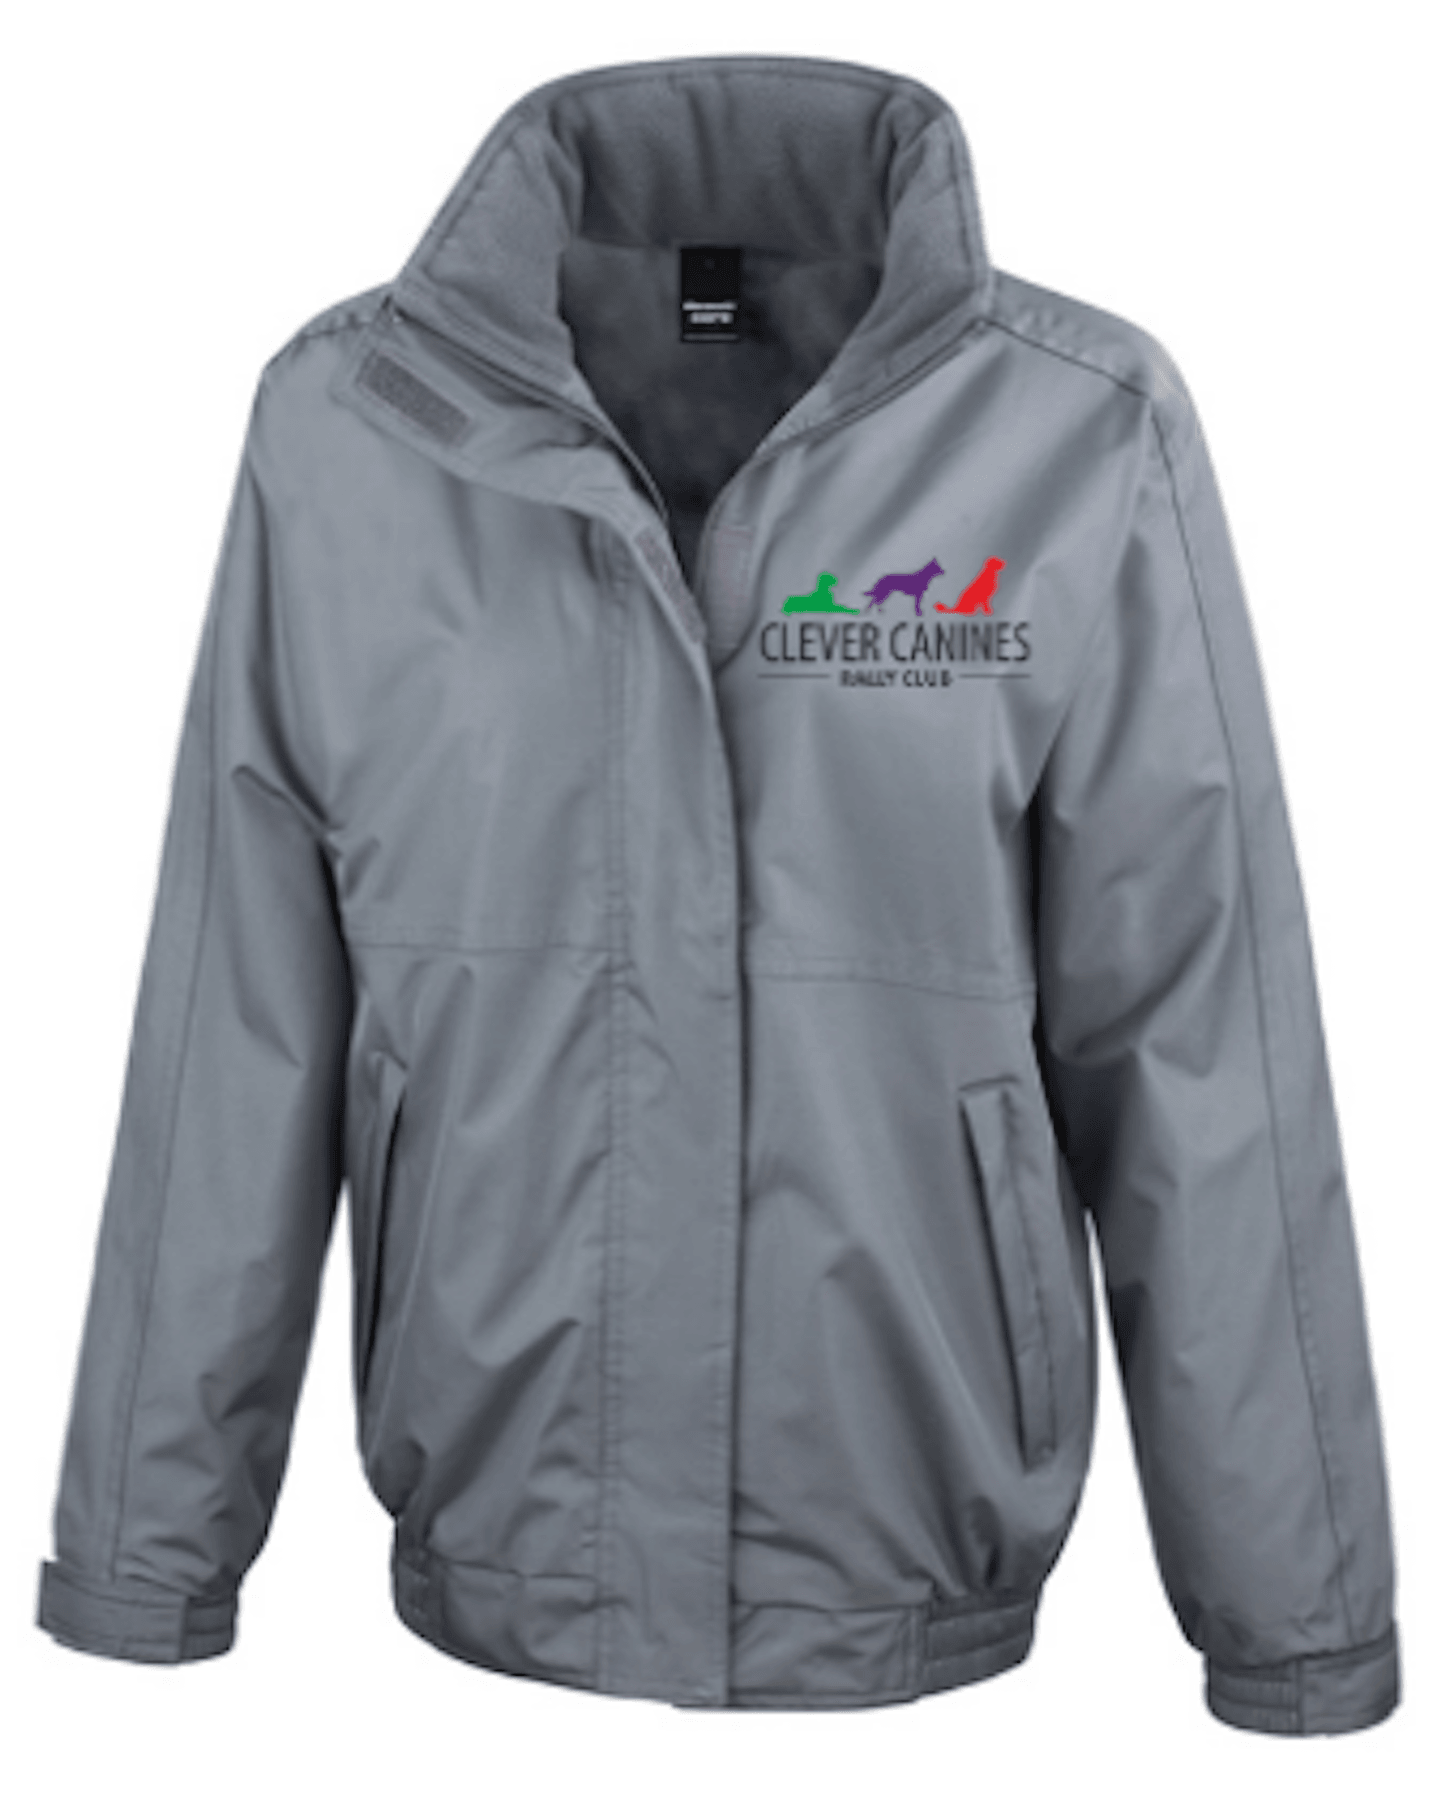 Clever Canines Rally Club – Men's Core Channel Jacket